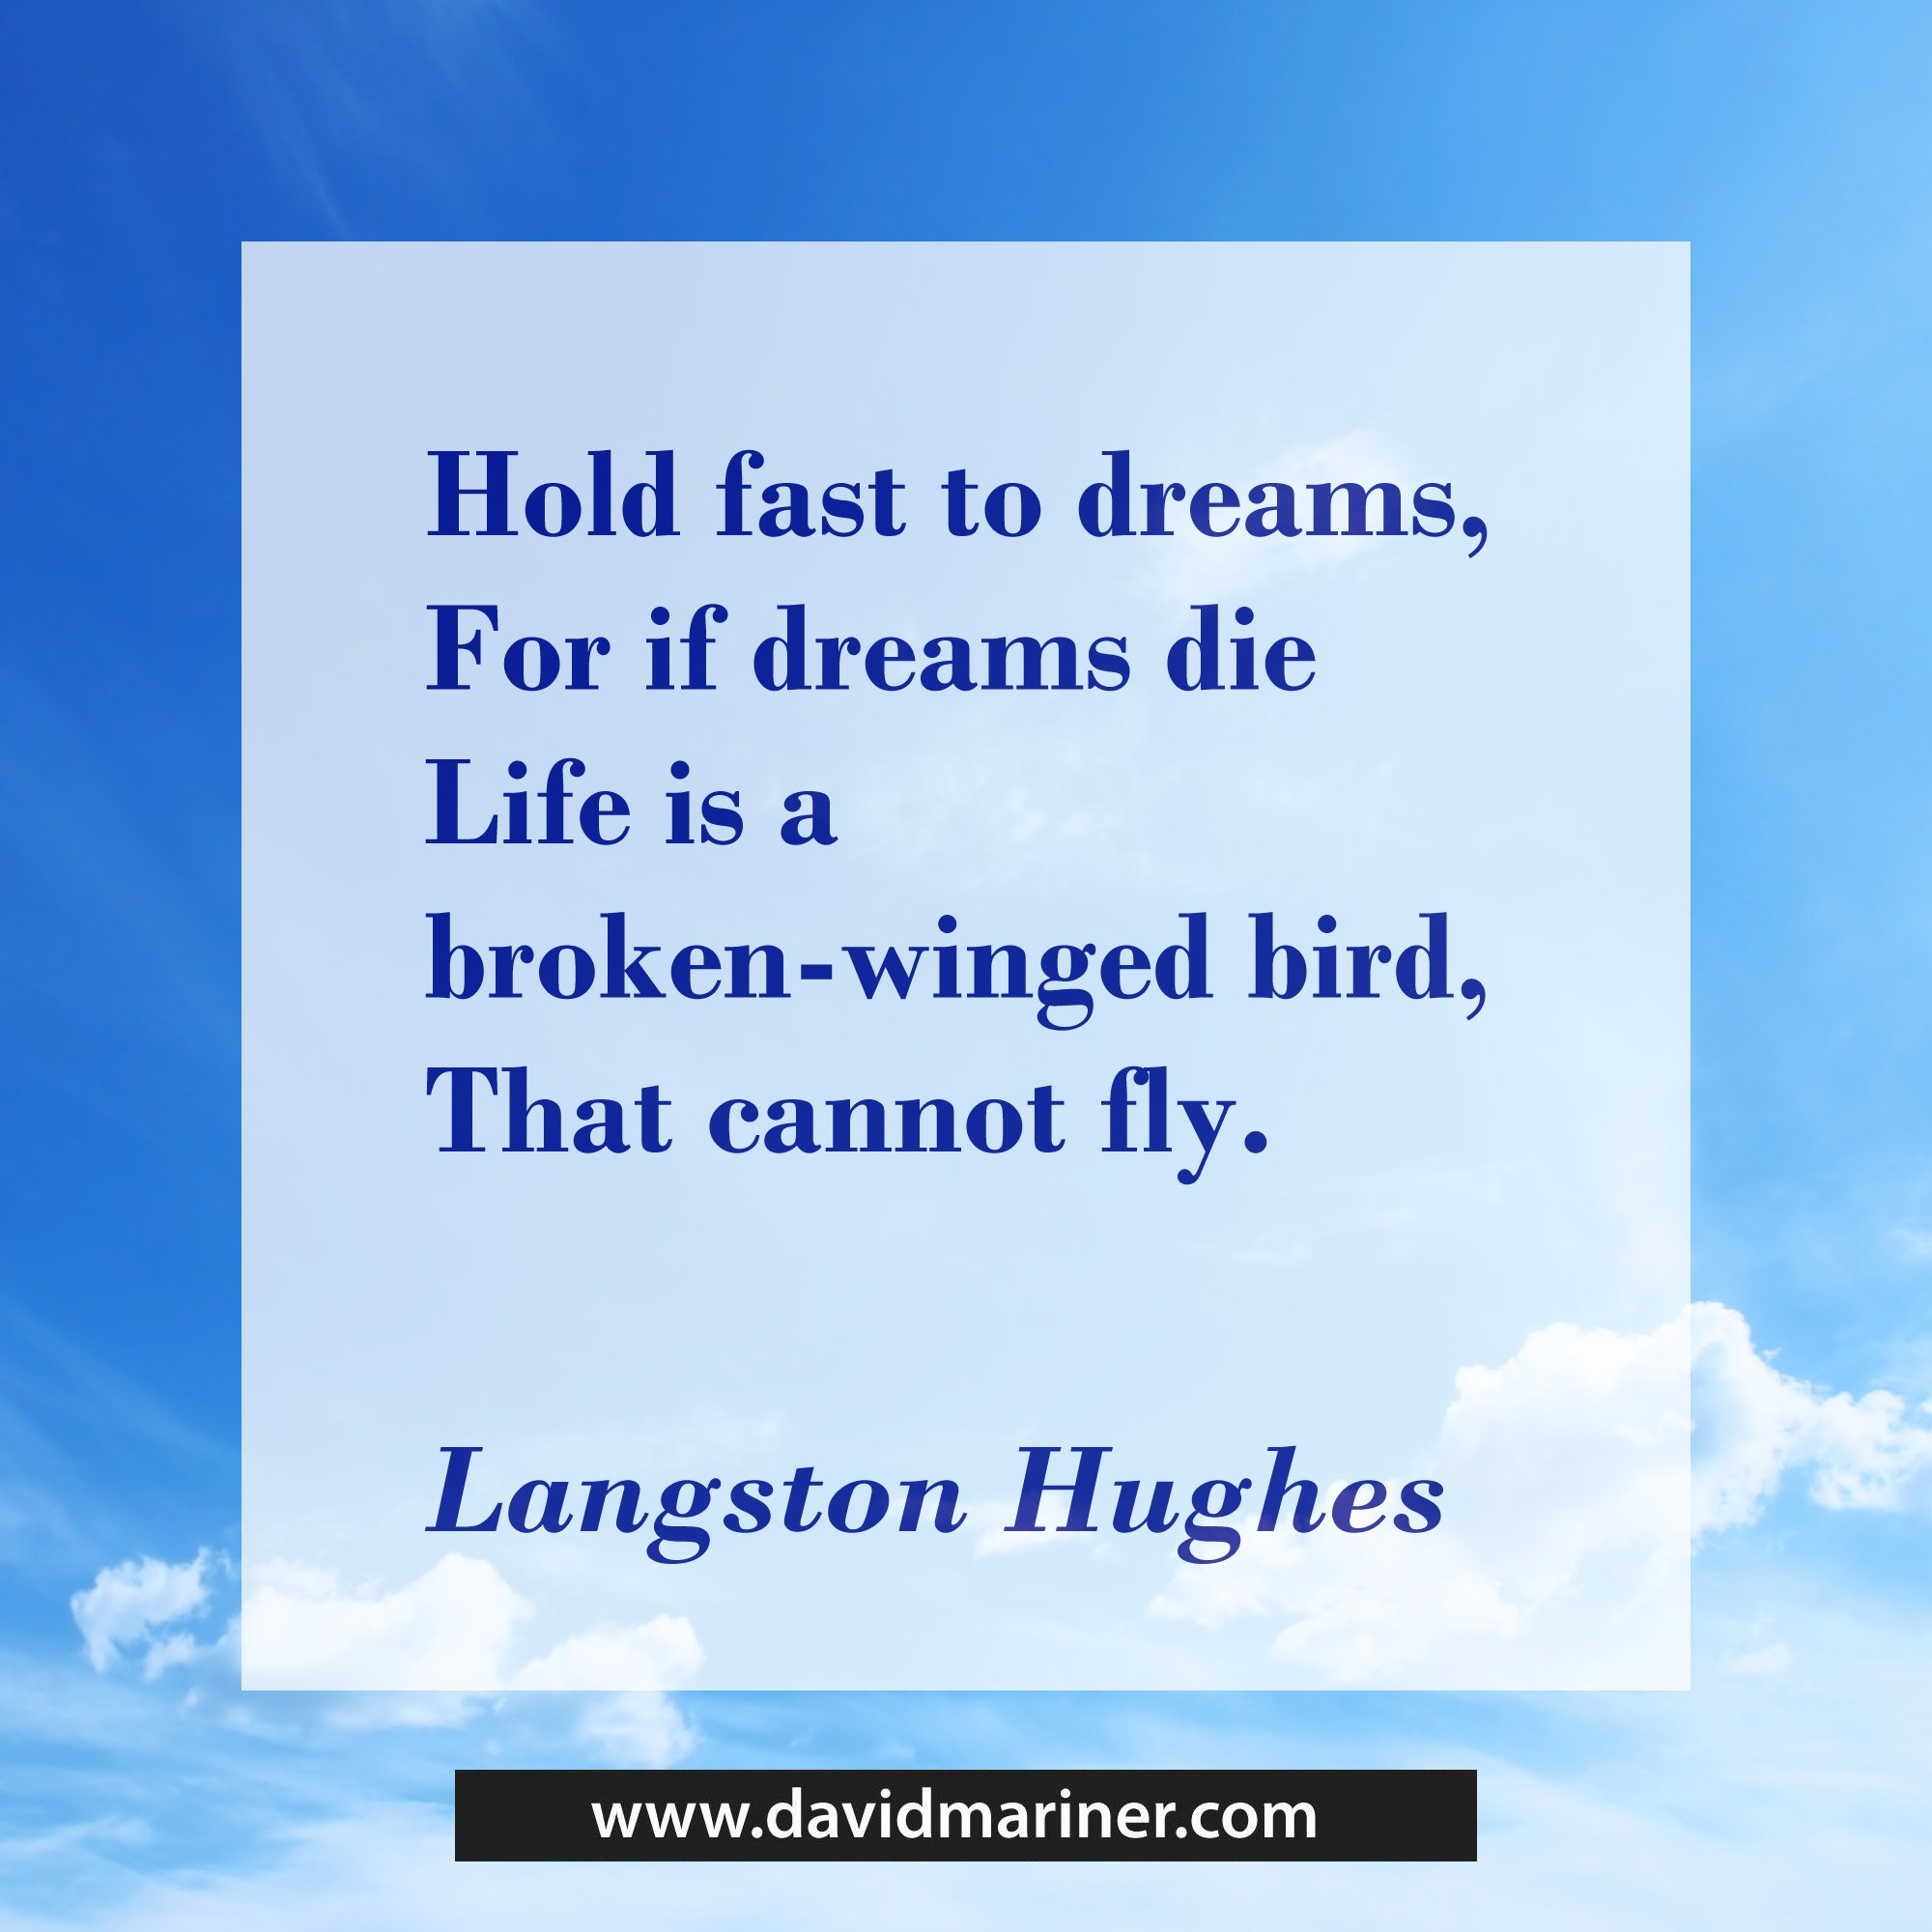 Hold fast to dreams, For if dreams die Life is a broken-winged bird, That cannot fly. ― Langston Hughes